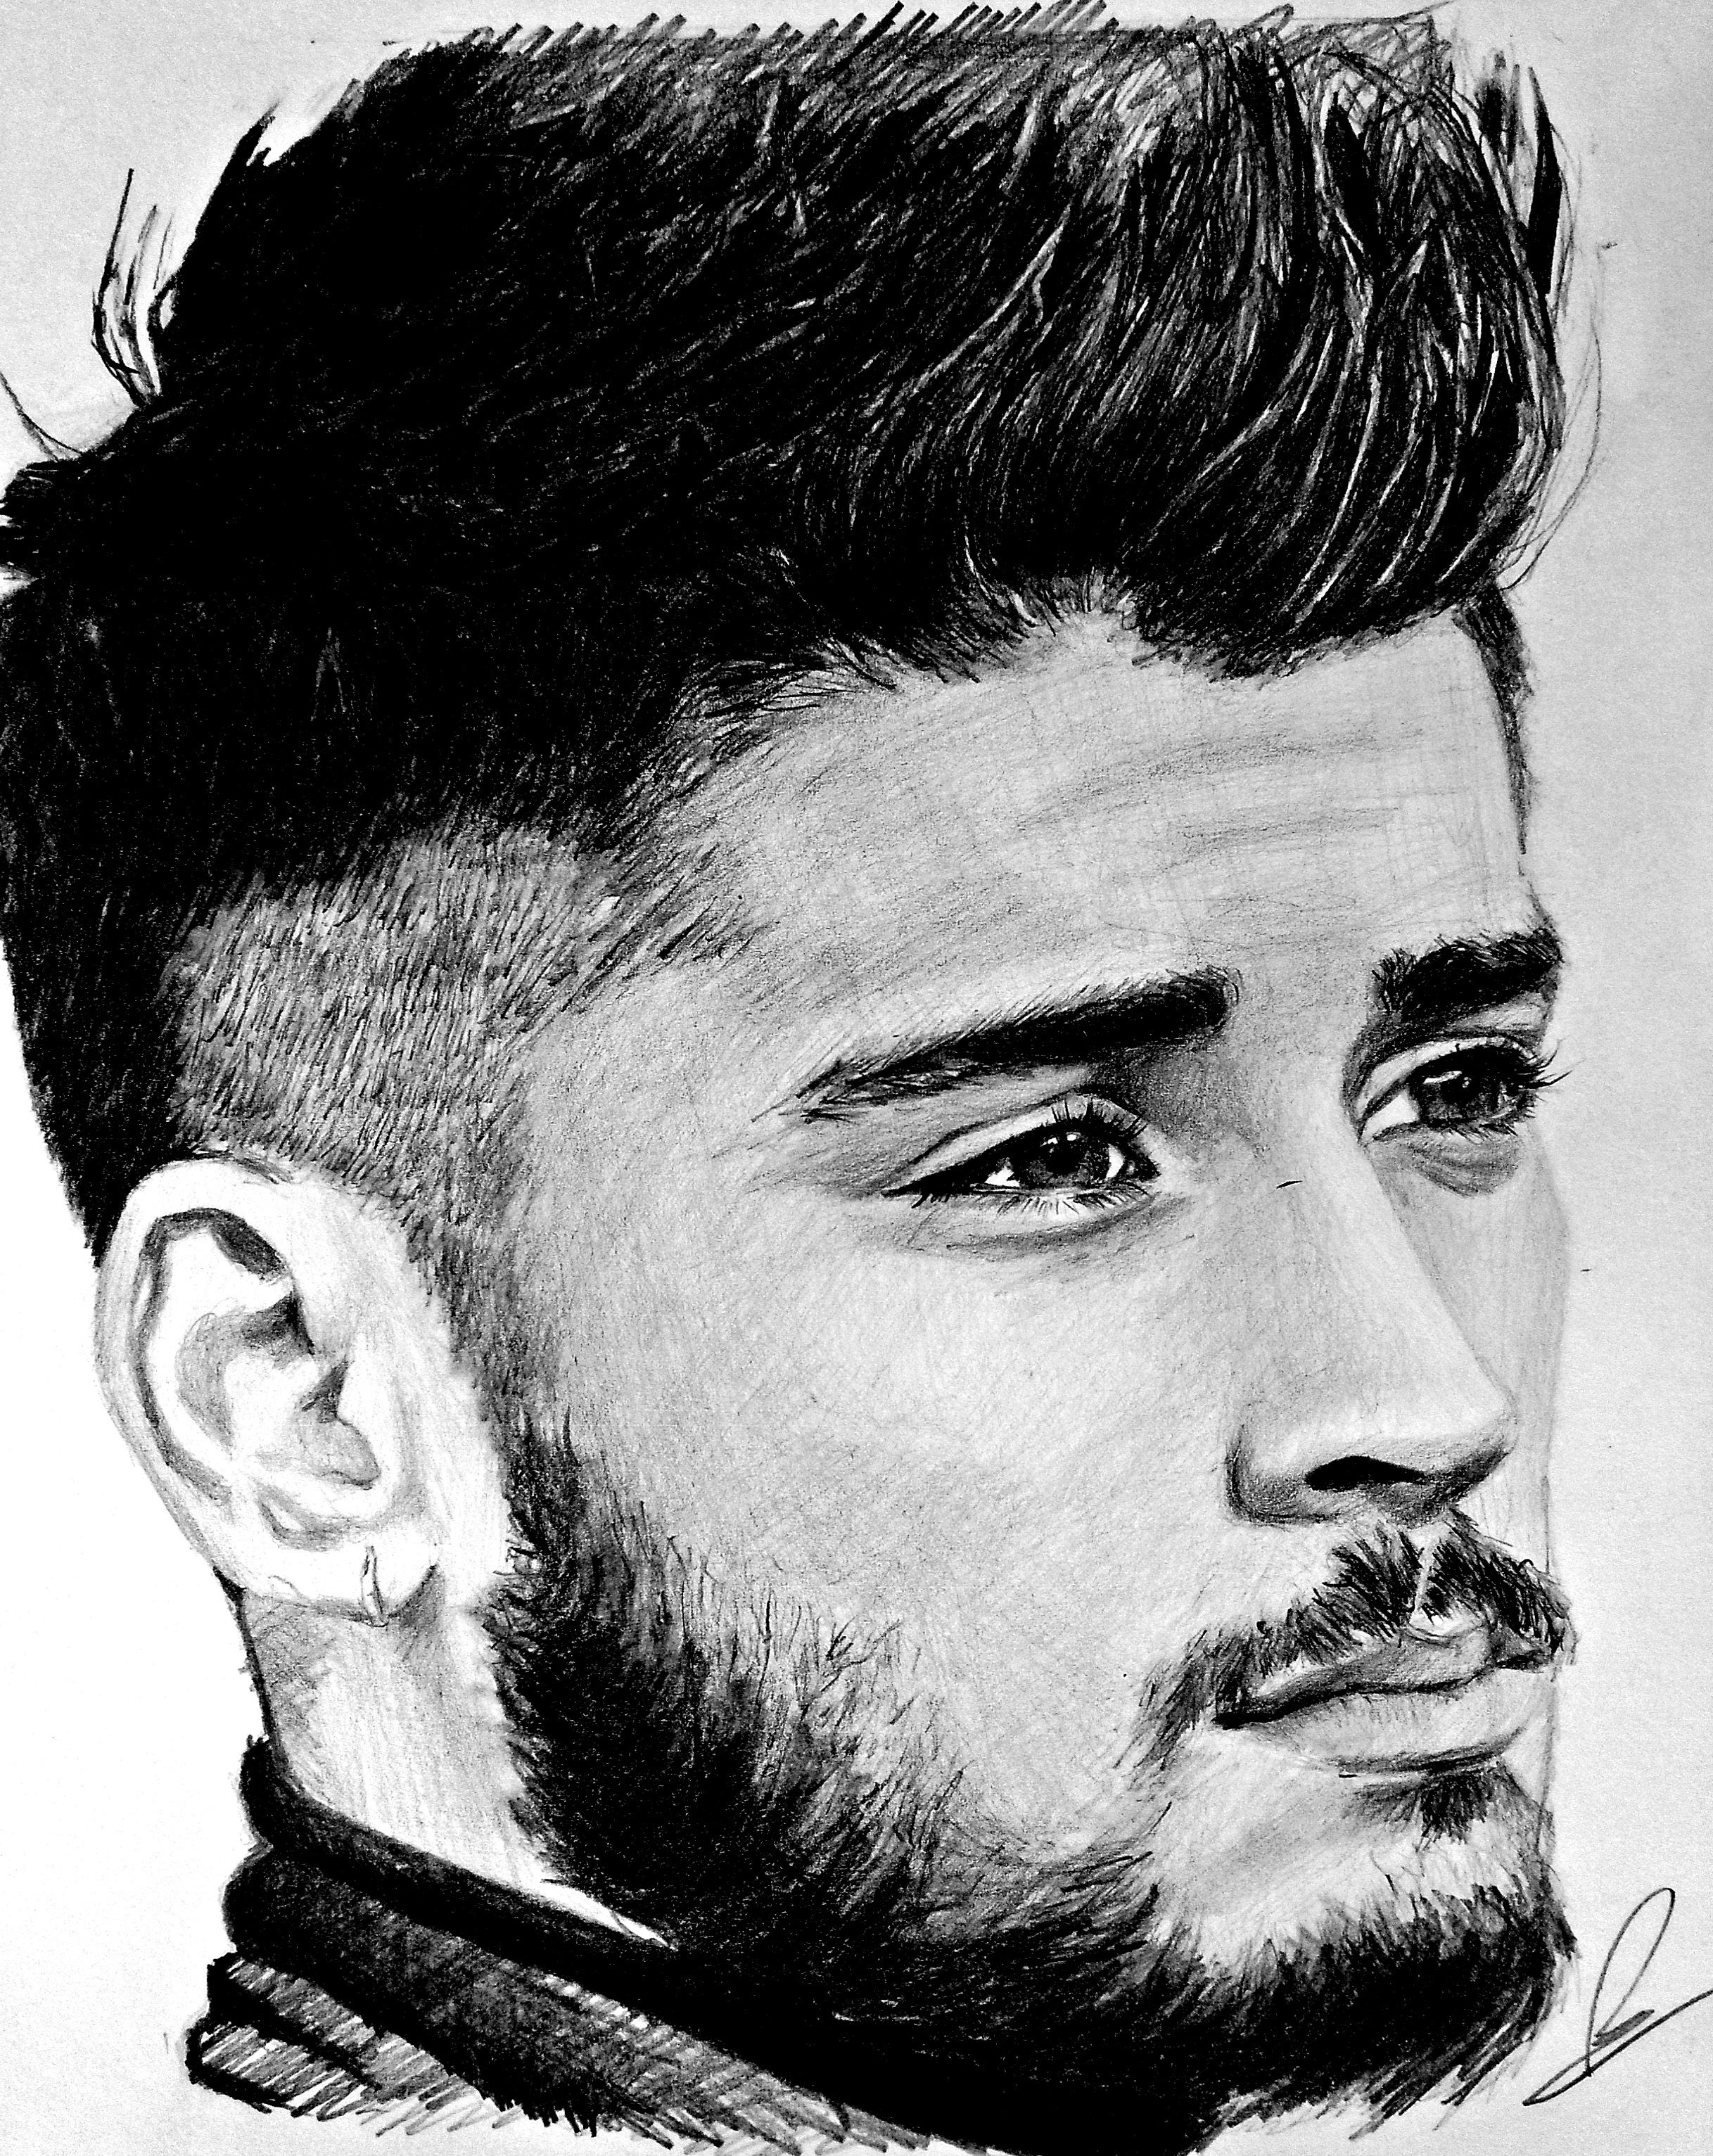 My drawing of zayn malik zayn malik drawing timelapse obin art zayn malik